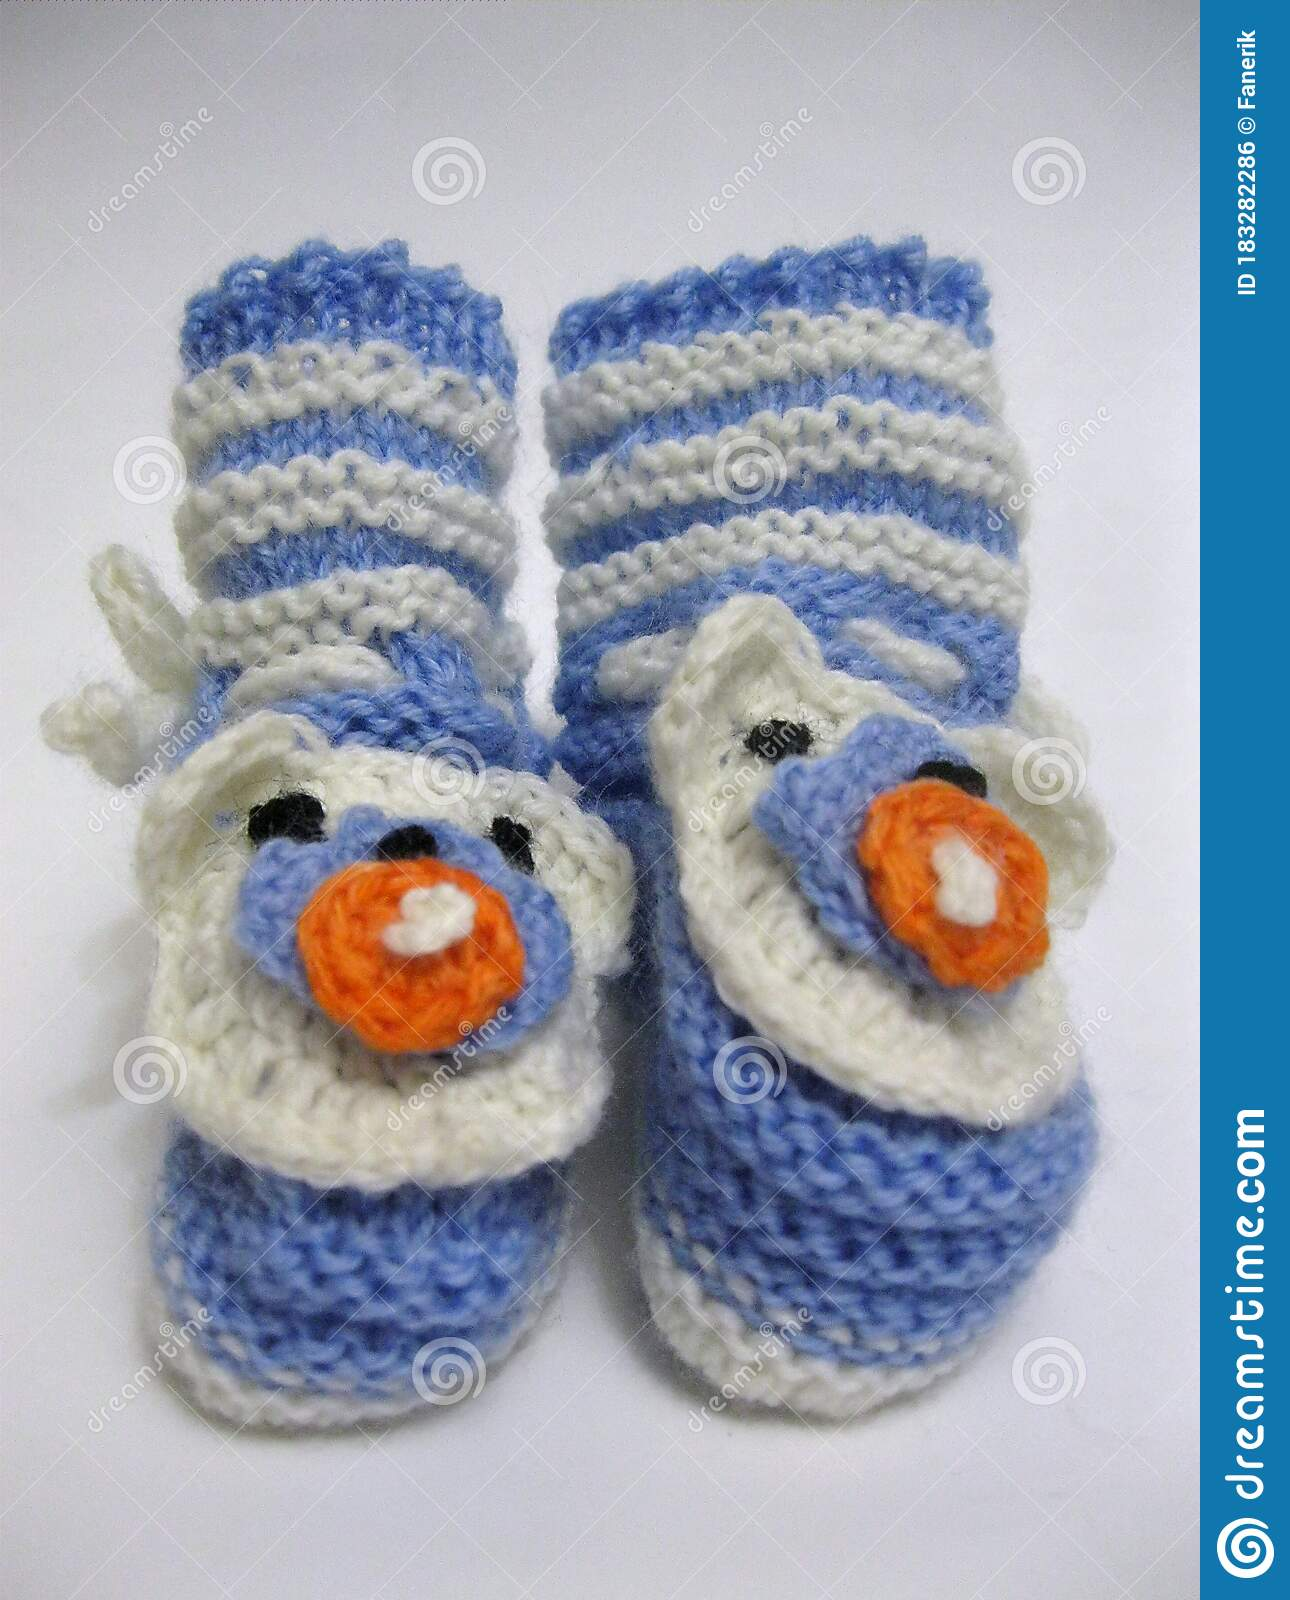 Knitted Booties With Knitting Needles